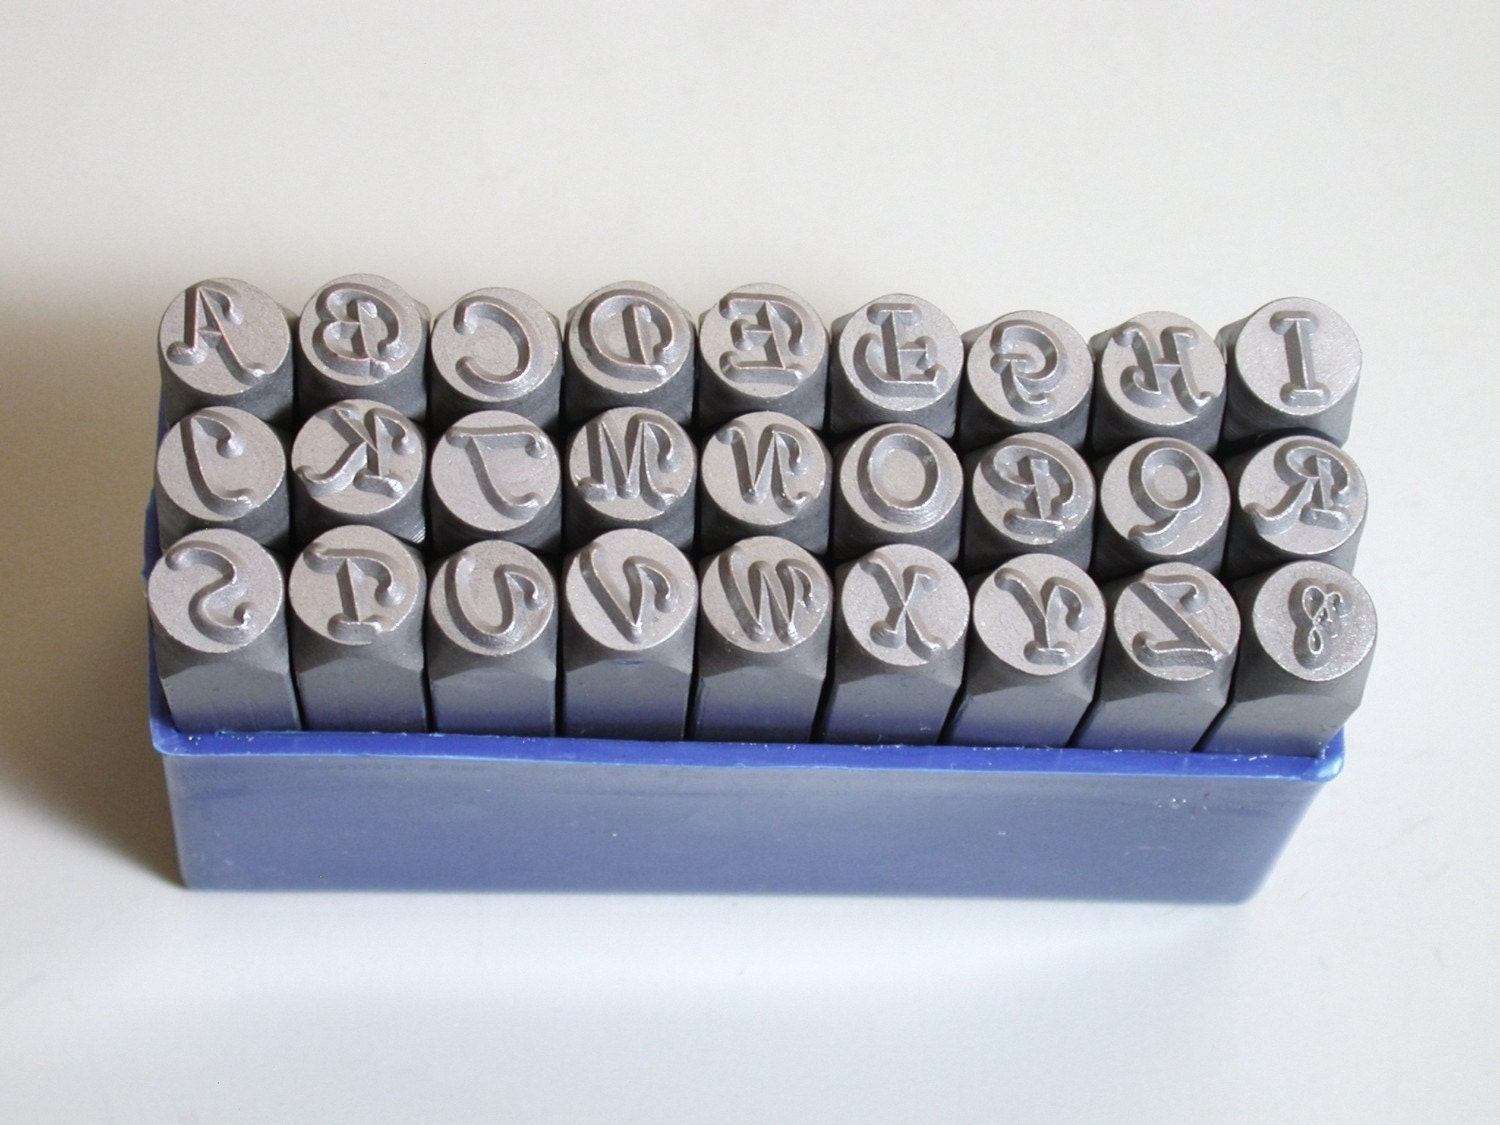 6mm Capital Letters Essex Font Metal Alphabet Stamps By